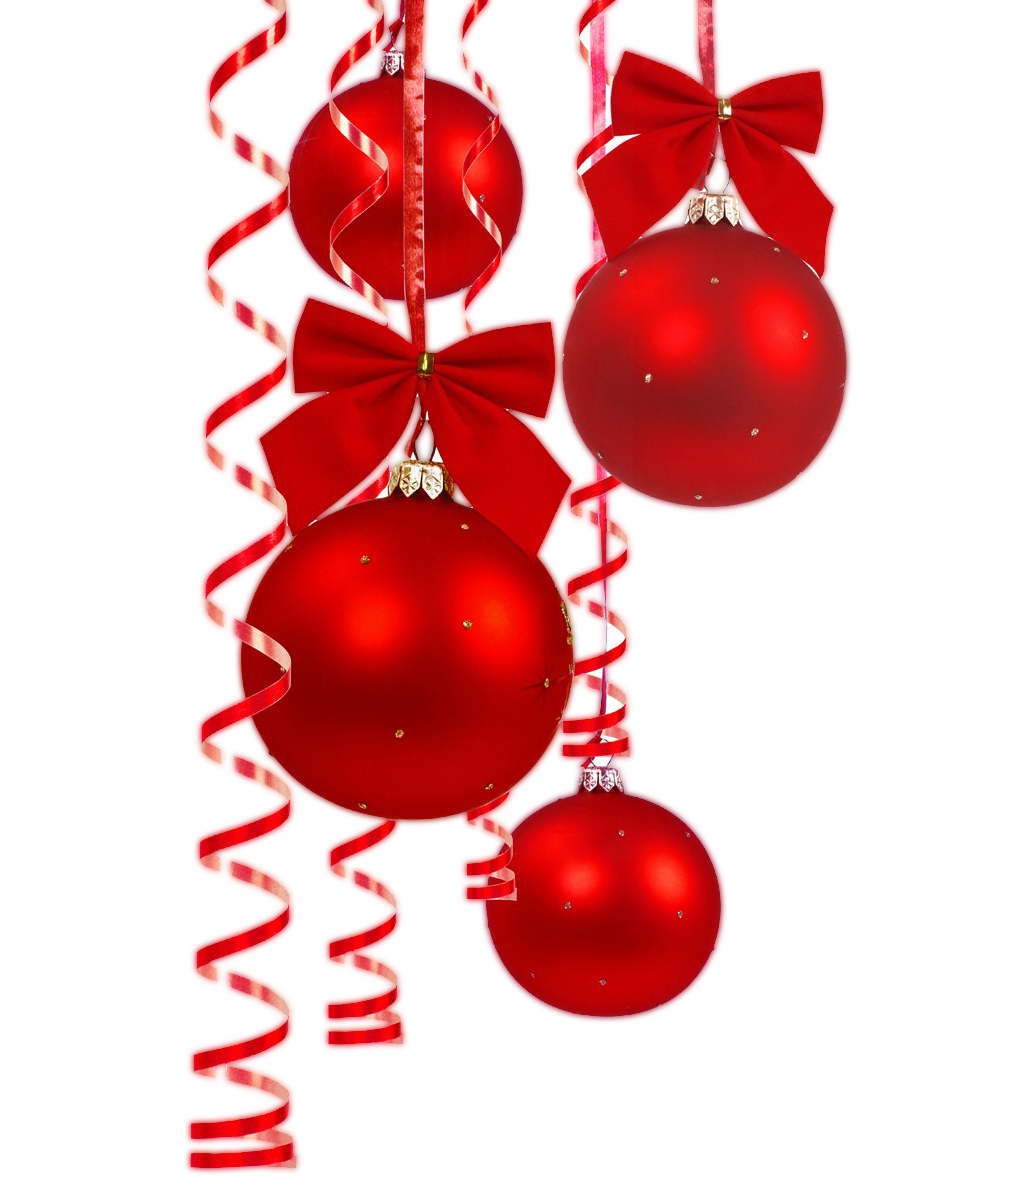 RED Christmas Ball Hanging Design